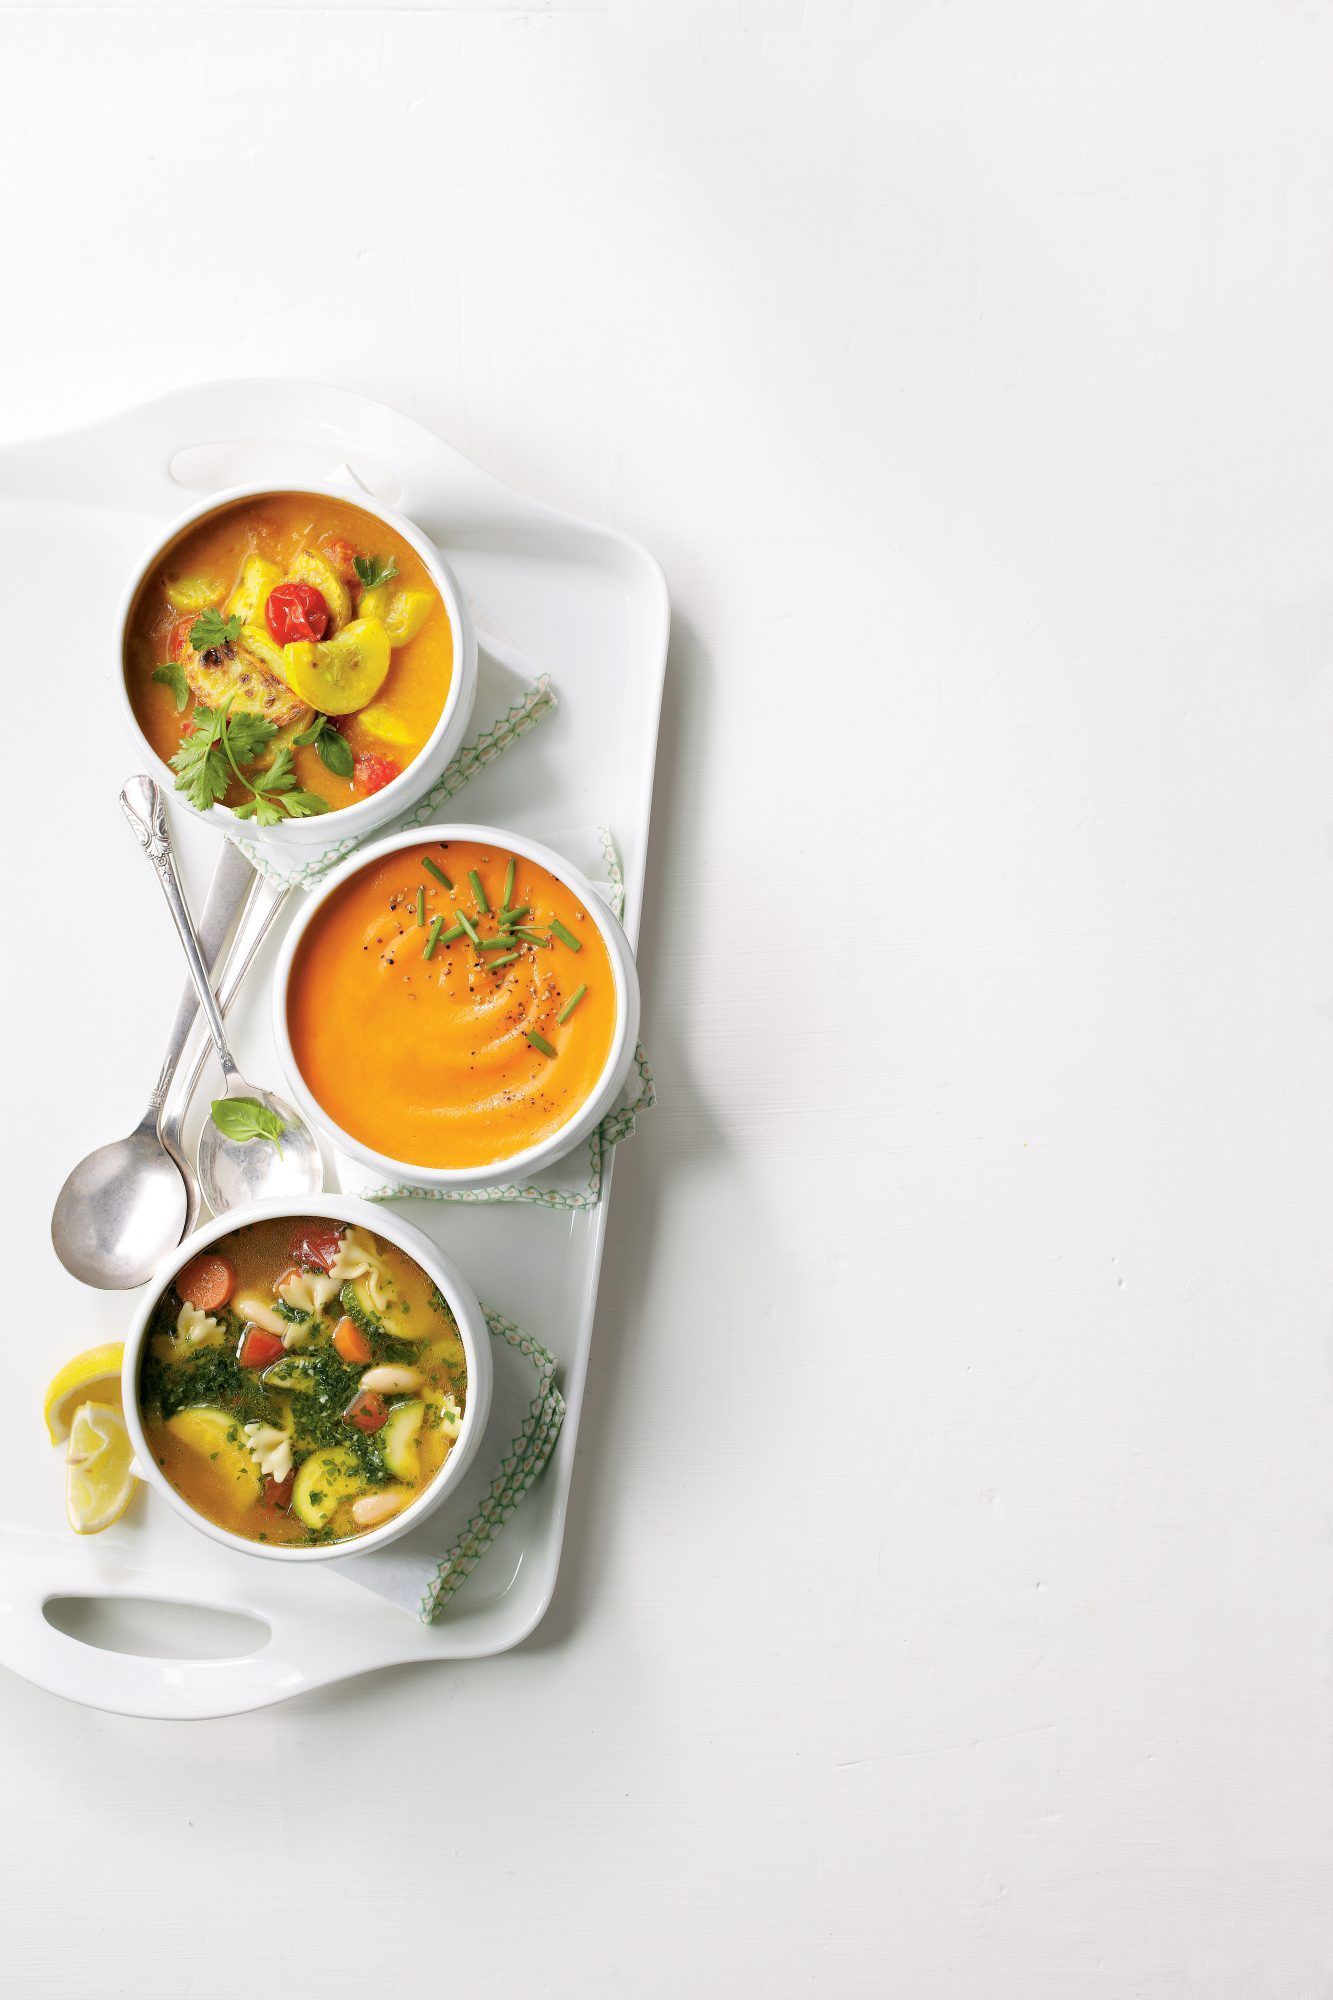 Homemade Vegetable Soup Recipes For Cold Winter Nights